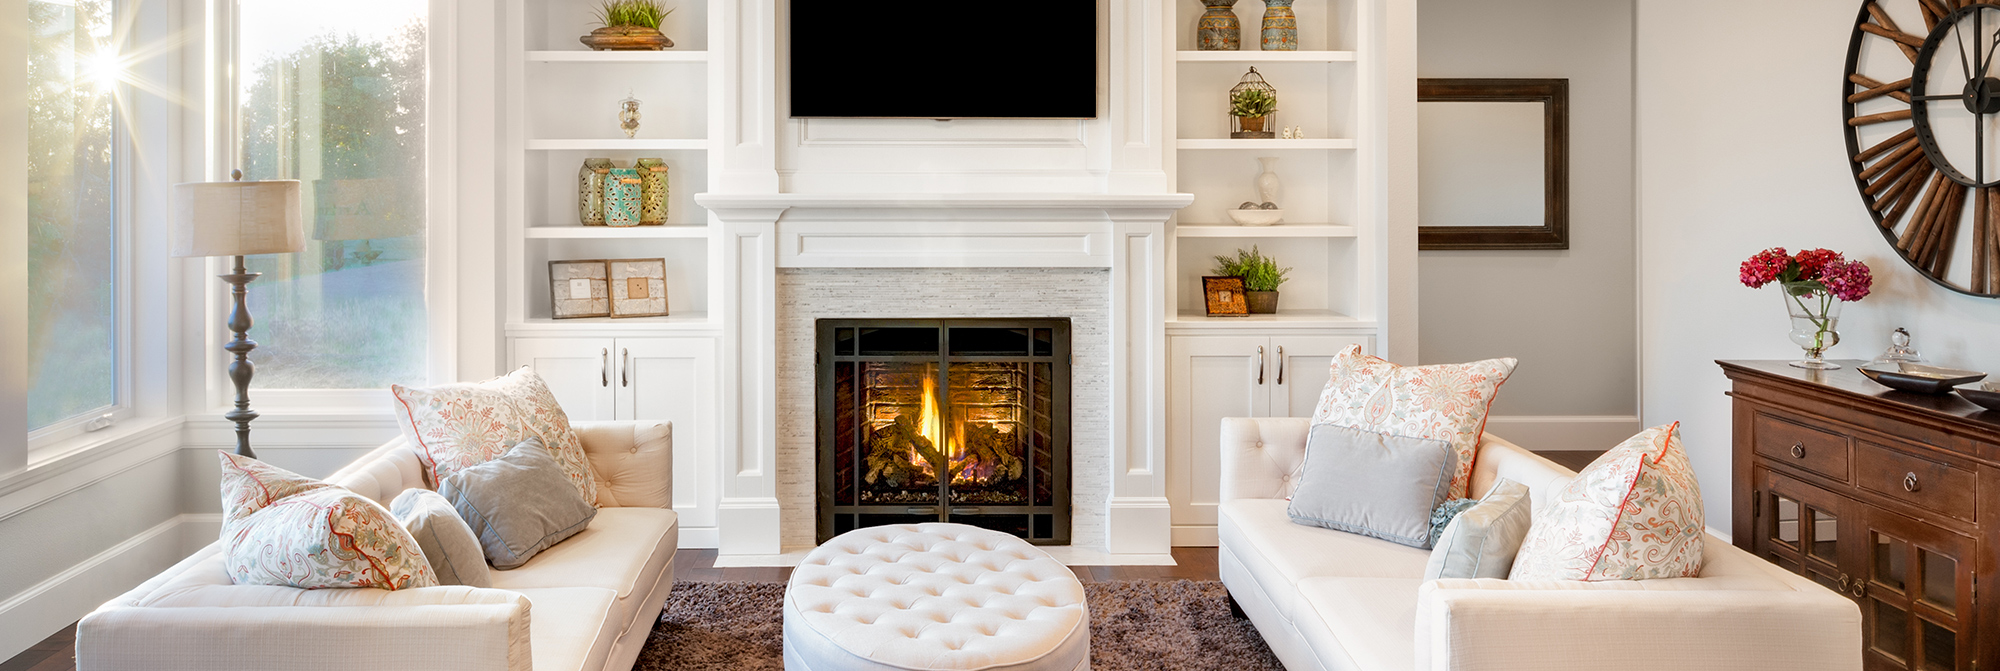 While Living Room with Fireplace